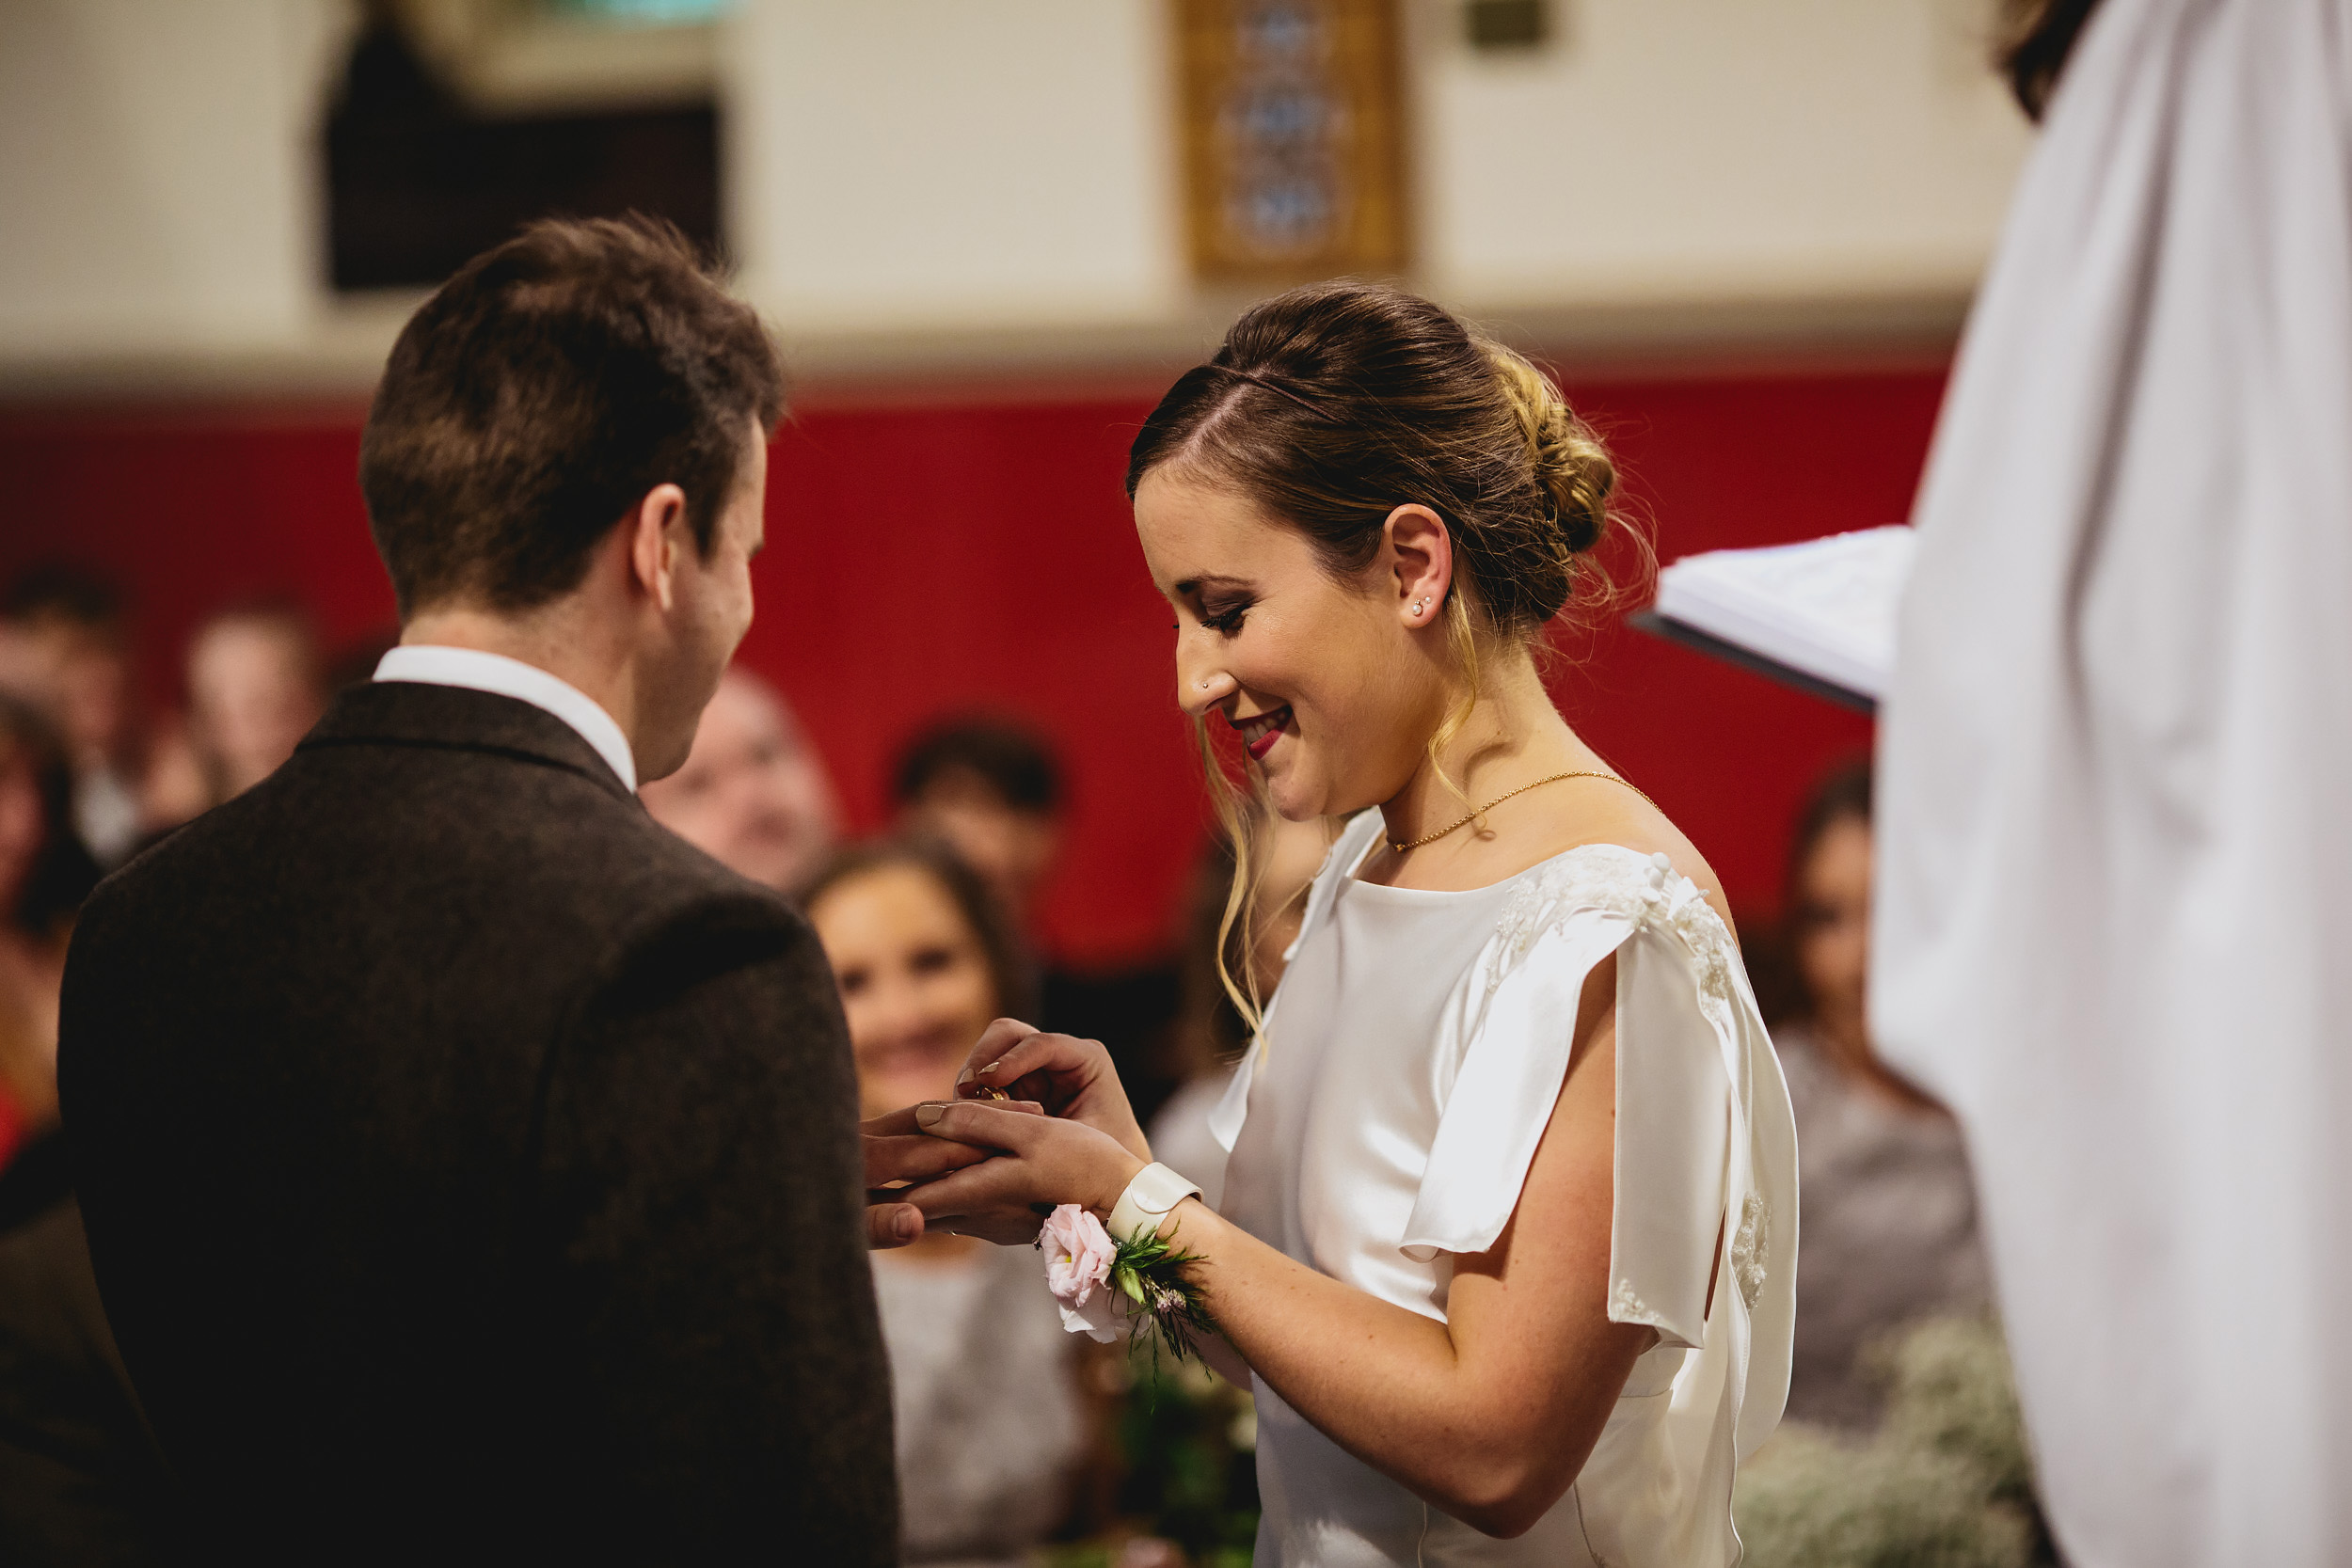 Bride and groom exchange rings at the church